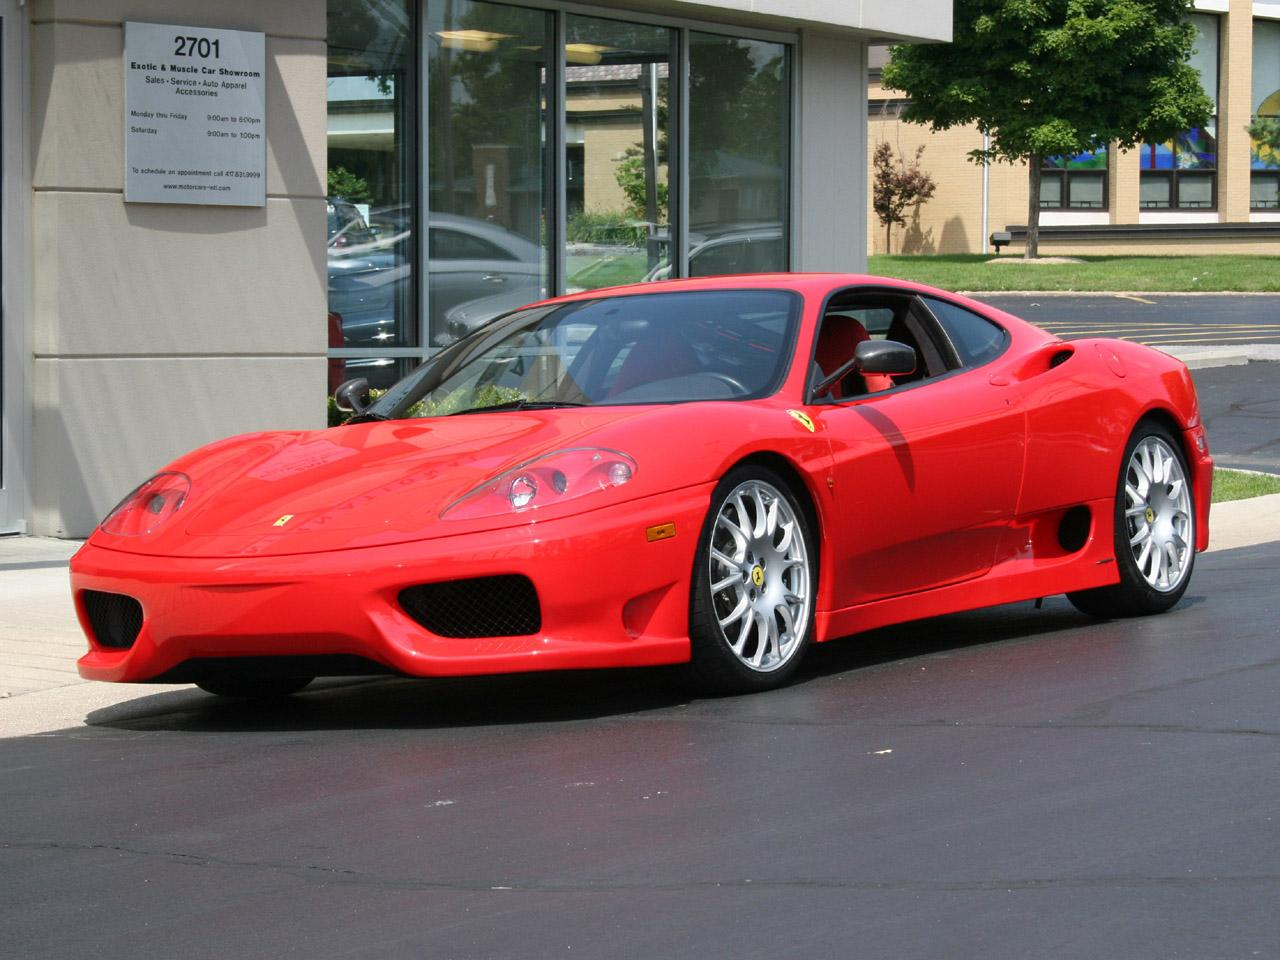 2004 ferrari challenge stradale. Cars Review. Best American Auto & Cars Review